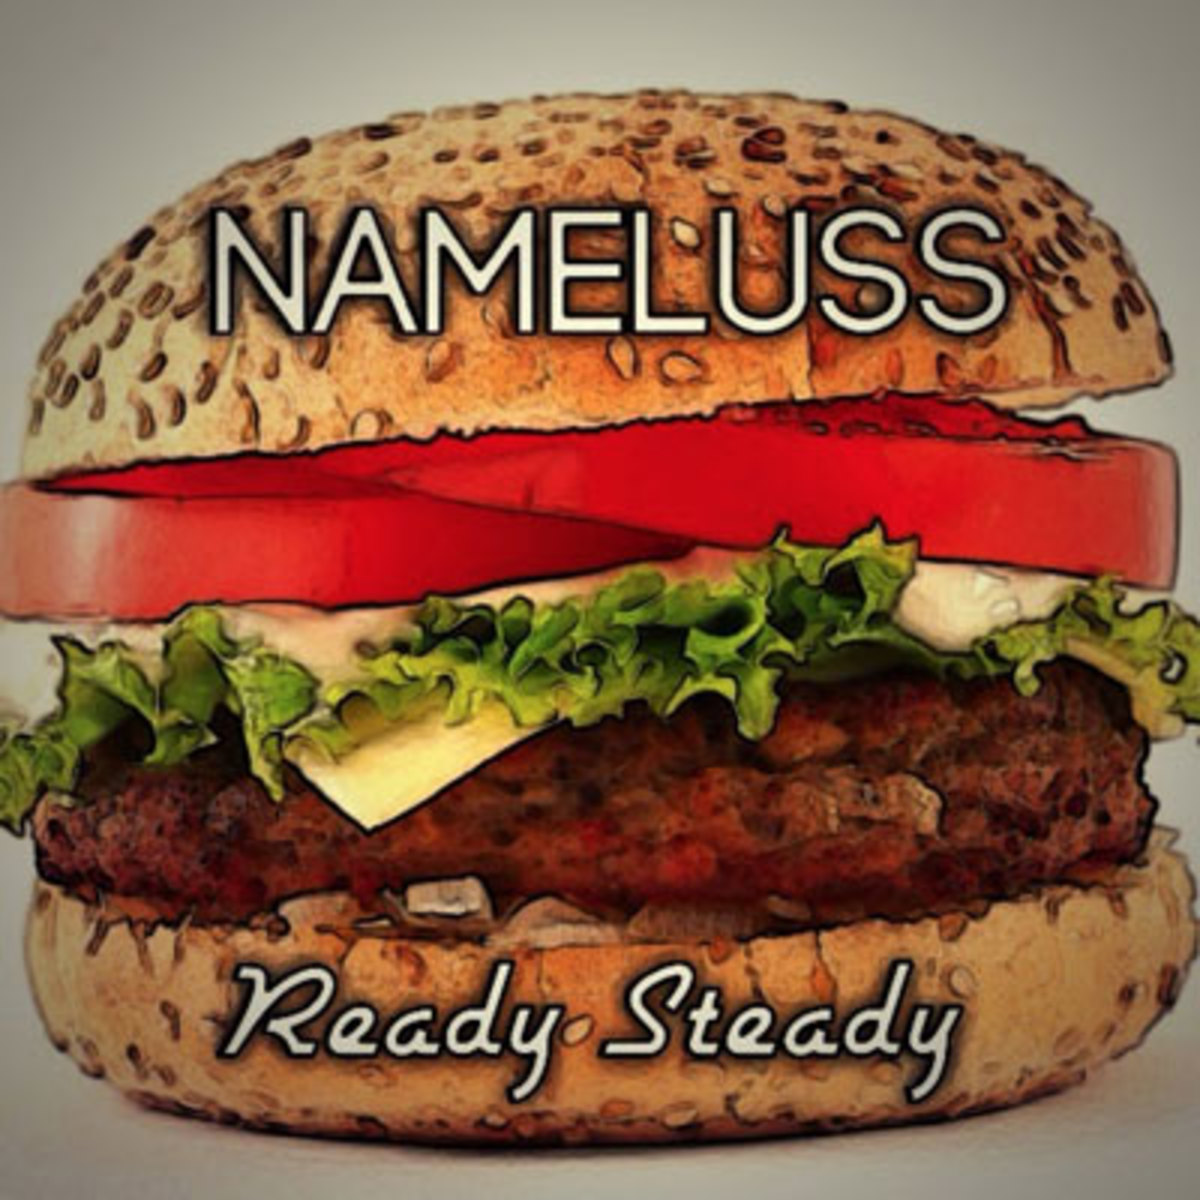 nameluss-readysteady.jpg